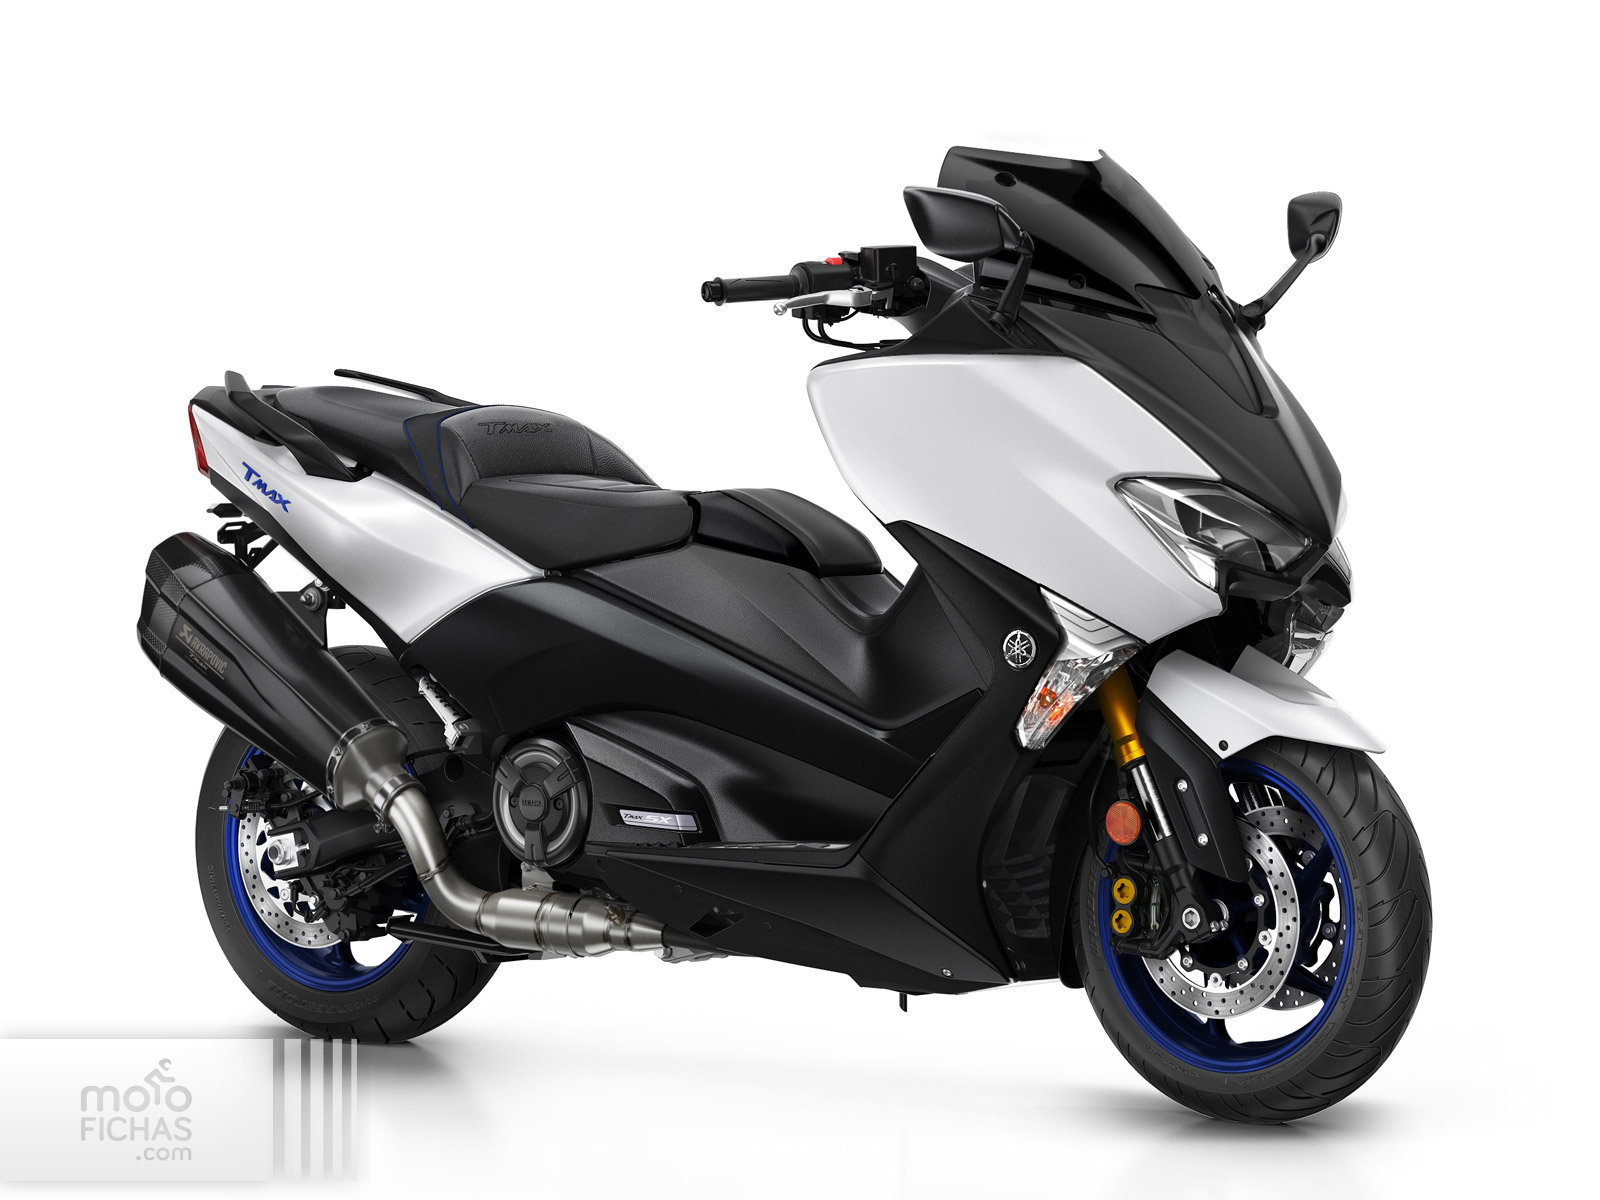 Yamaha Tmaxsxdx 2019 Precio Ficha Opiniones Y Ofertas. Telephone Recording Systems Iraq News Update. Bachelor Information Technology. Best Insurance Providers Send Newsletter Free. Retirement Planning Presentations. Automatic Garage Door And Fireplace. Houston Security Companies Latest Data Breach. Basic Ecommerce Website Cost. Online Office Administration